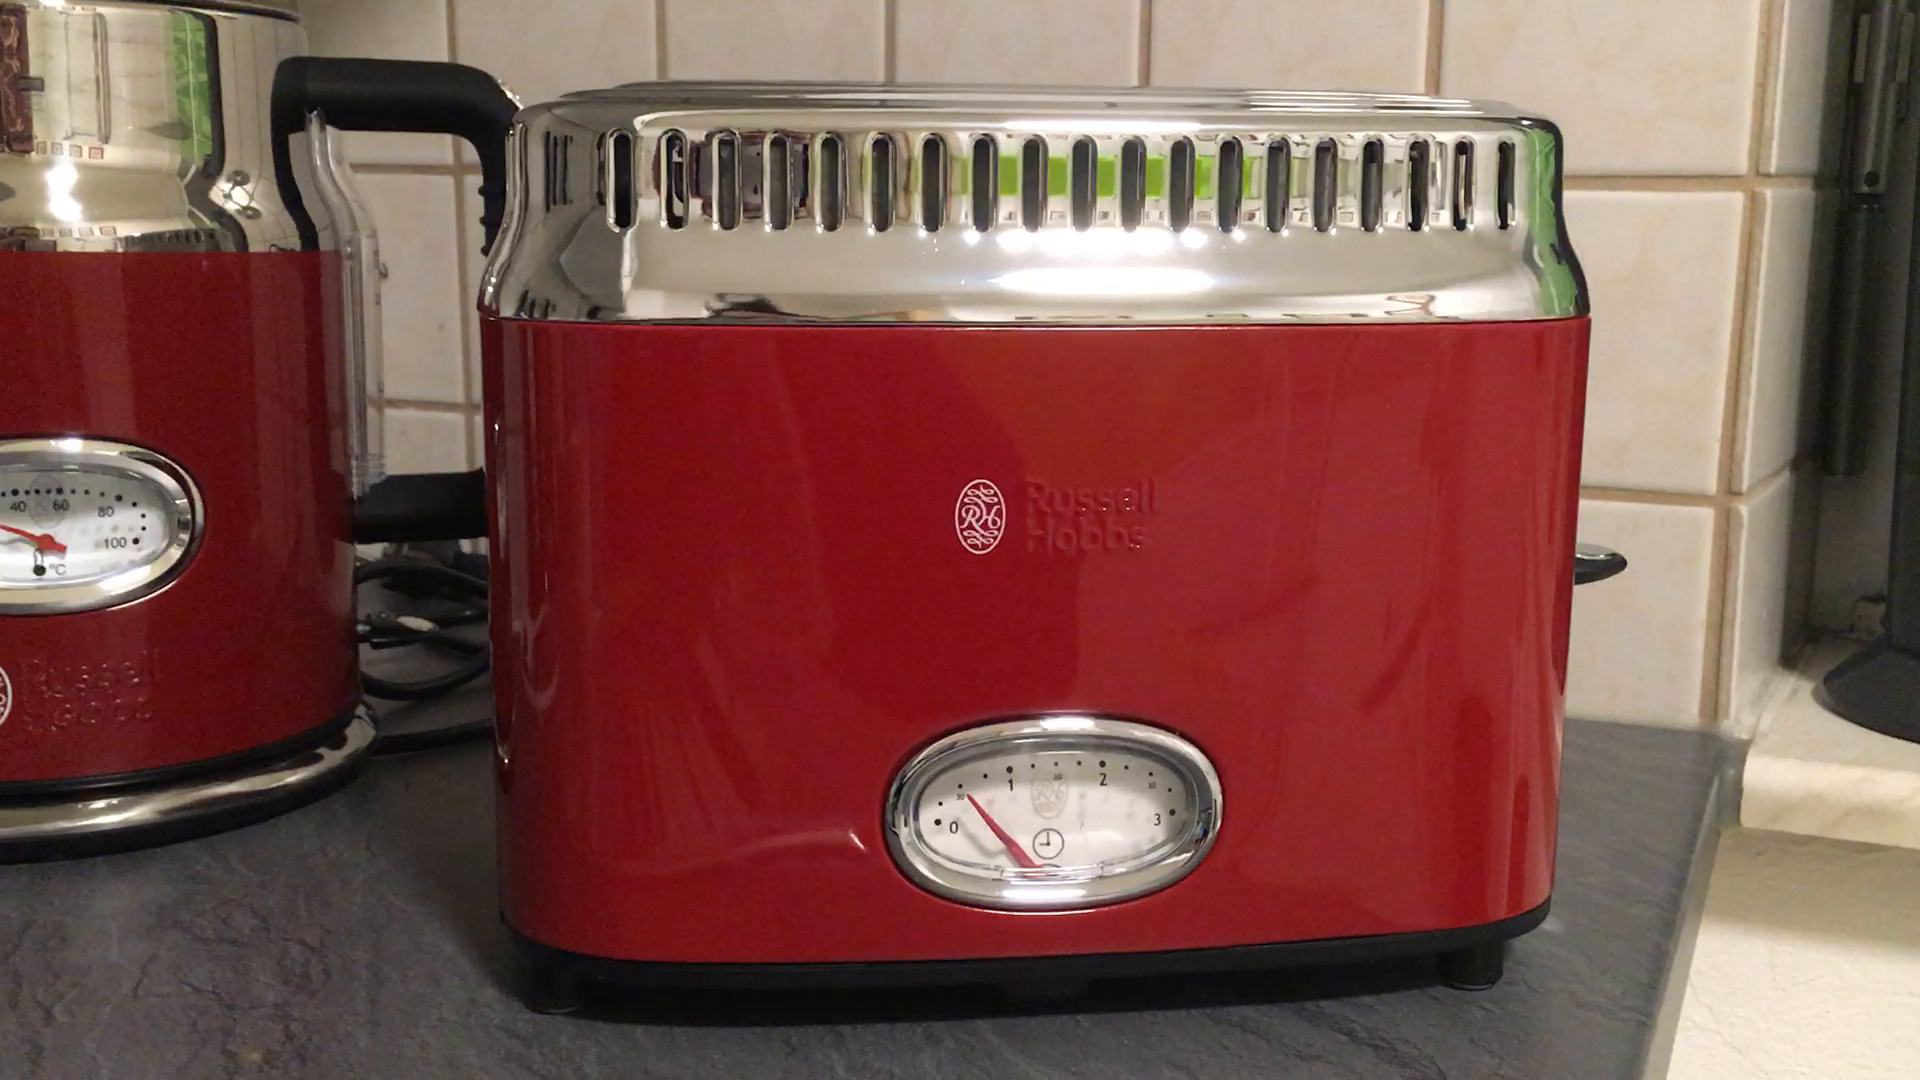 Amazon.de: russell hobbs 21680 56 toaster retro ribbon red retro